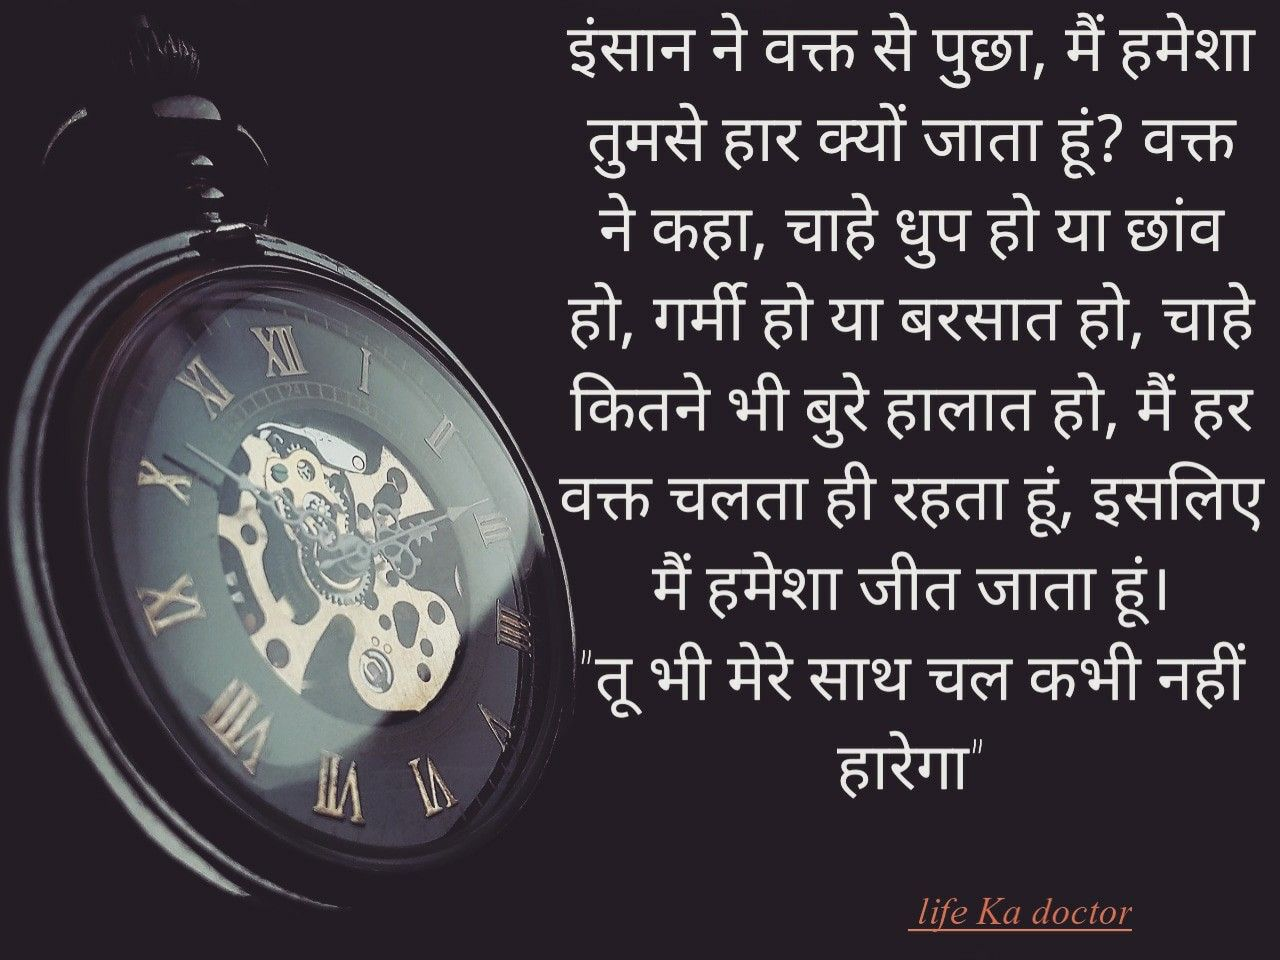 Motivational Quotes In Hindi Motivational Quotes In Hindi Inspirational Quotes In Hindi Motivational Quotes